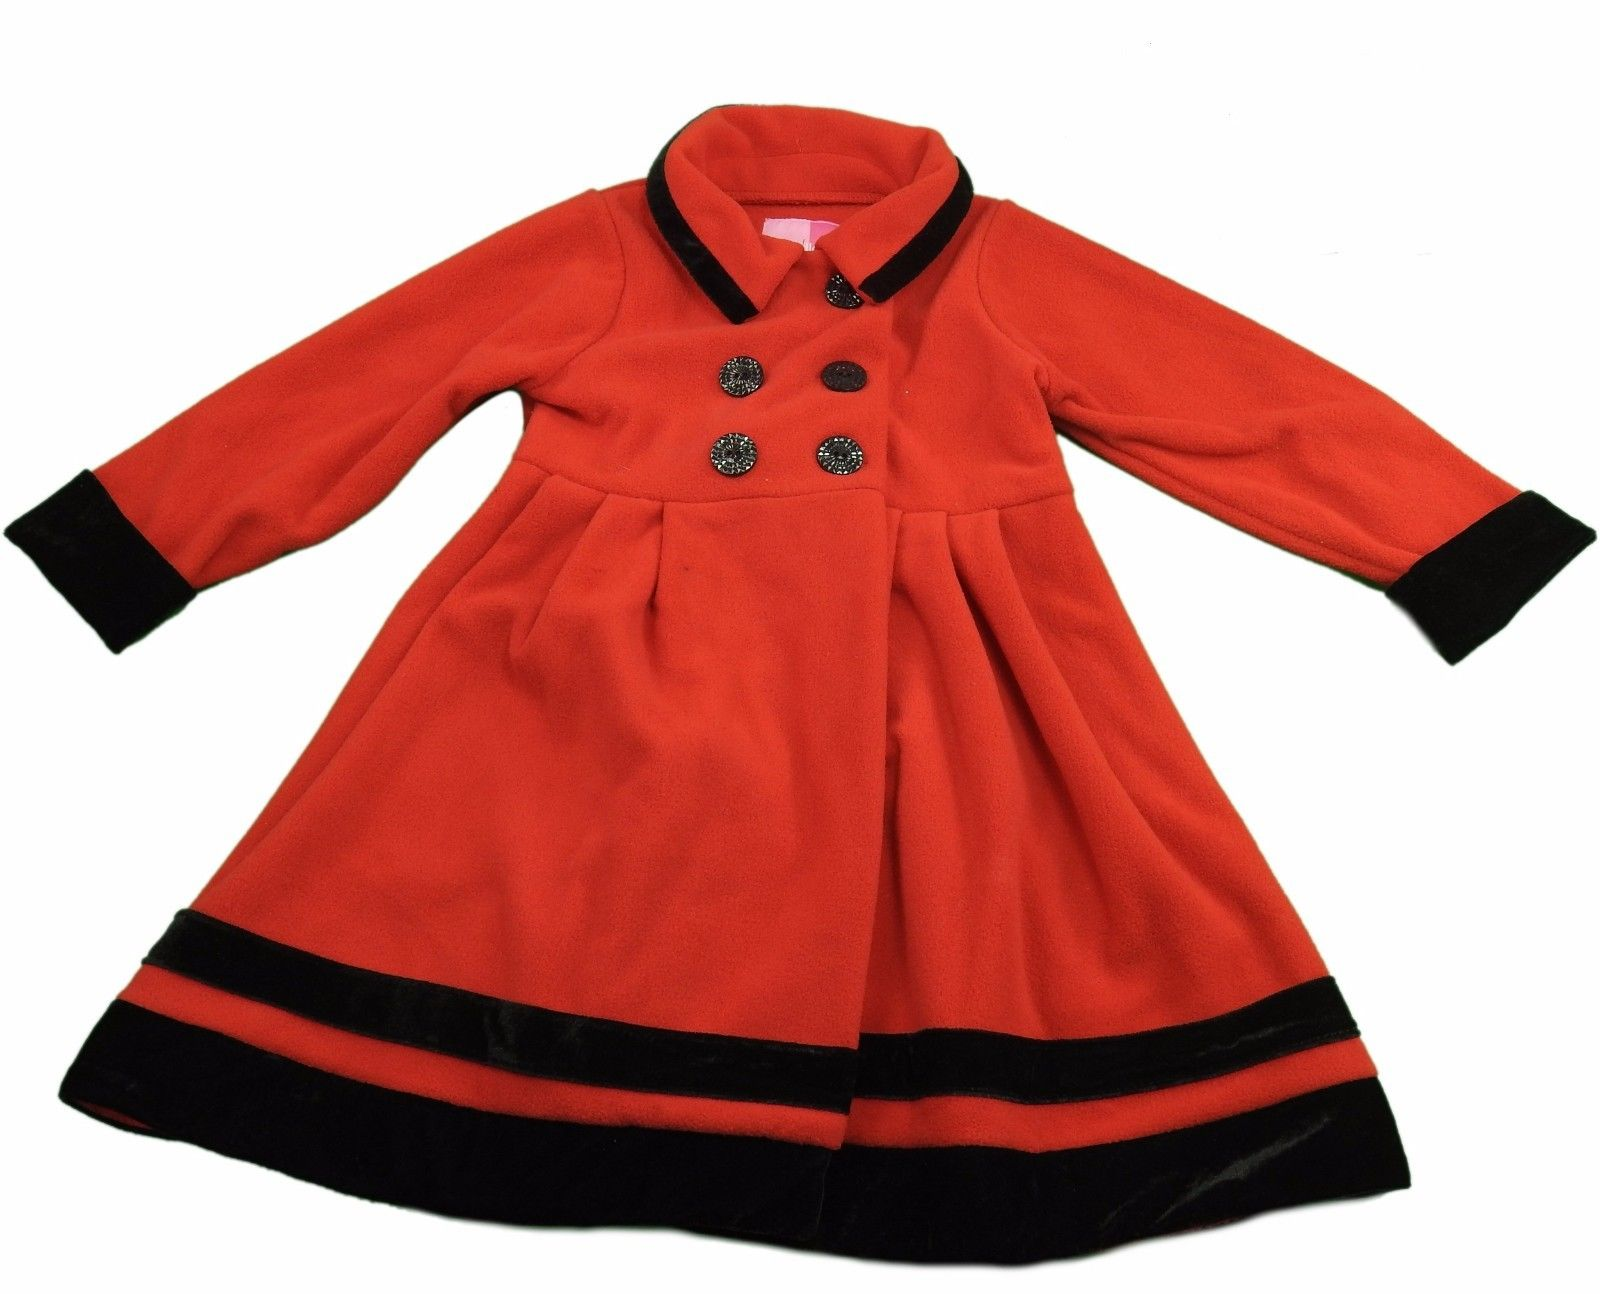 f6d7e76c38cf Good Lad Apparel Baby Girls Size 2T (Toddler) Fleece Coat